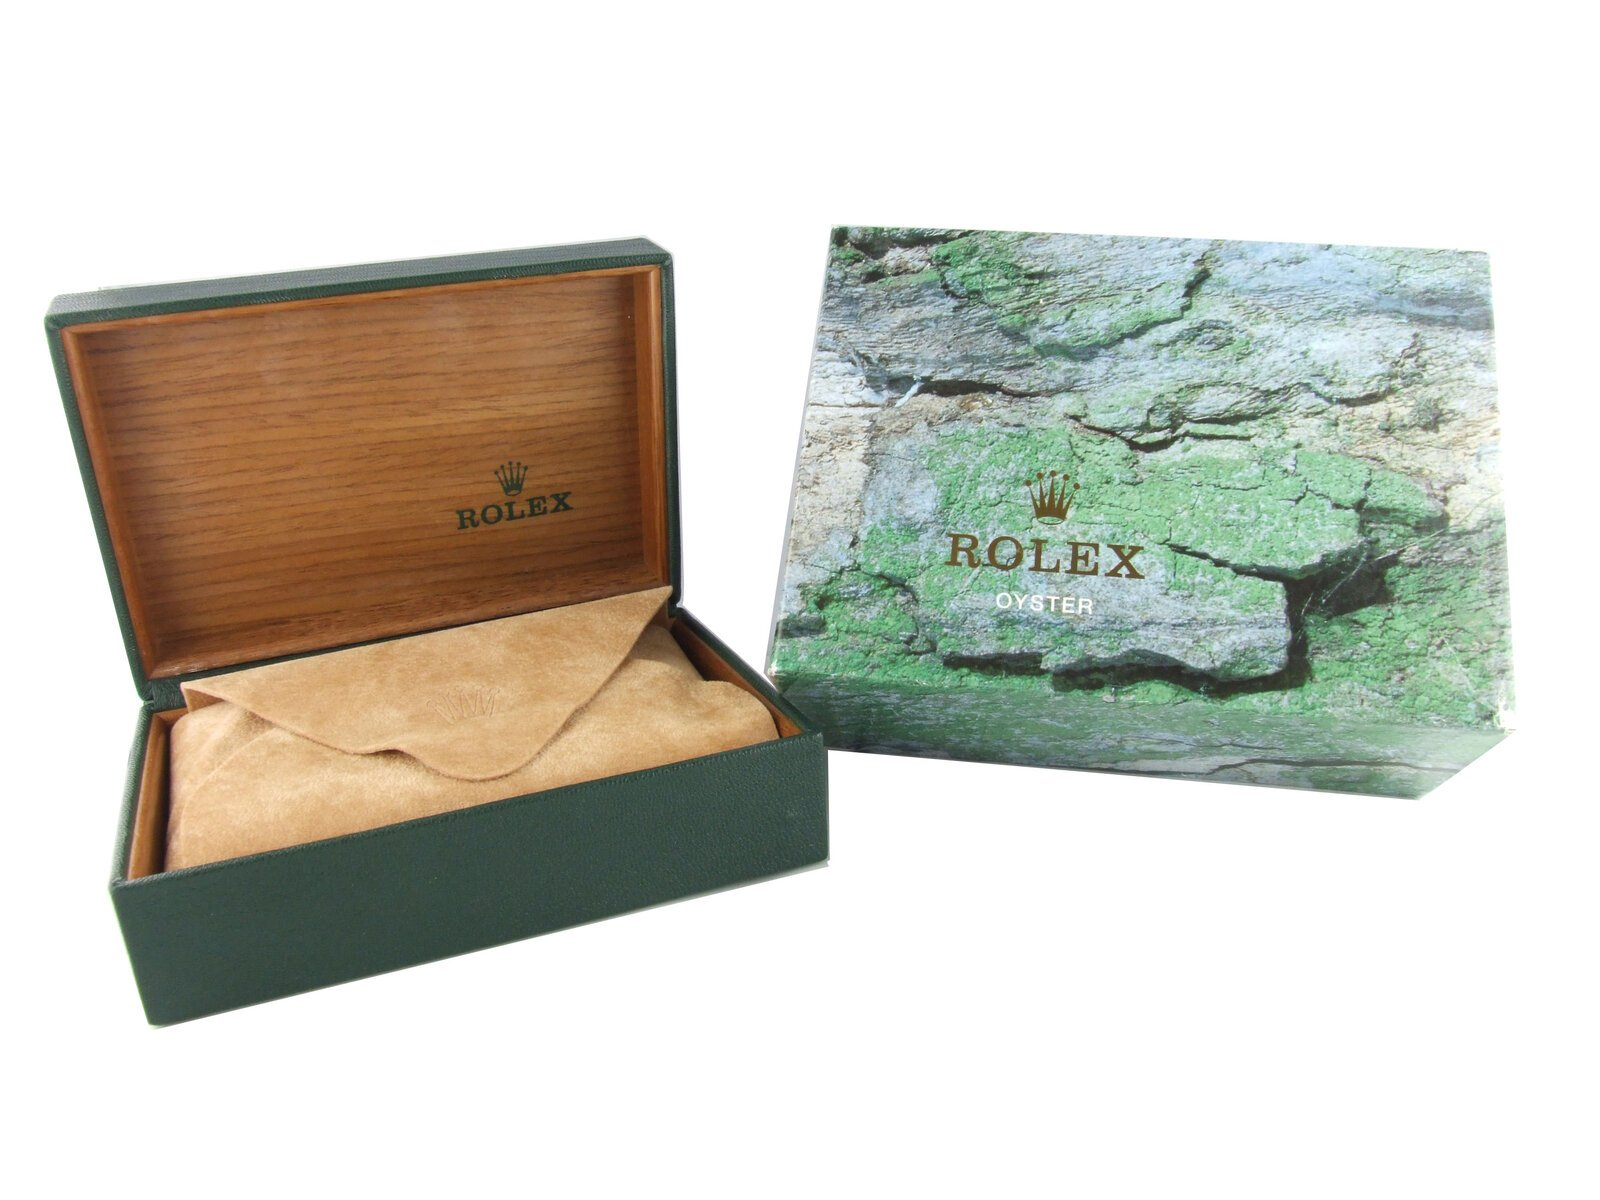 Rolex_cushion_Box_Mens.